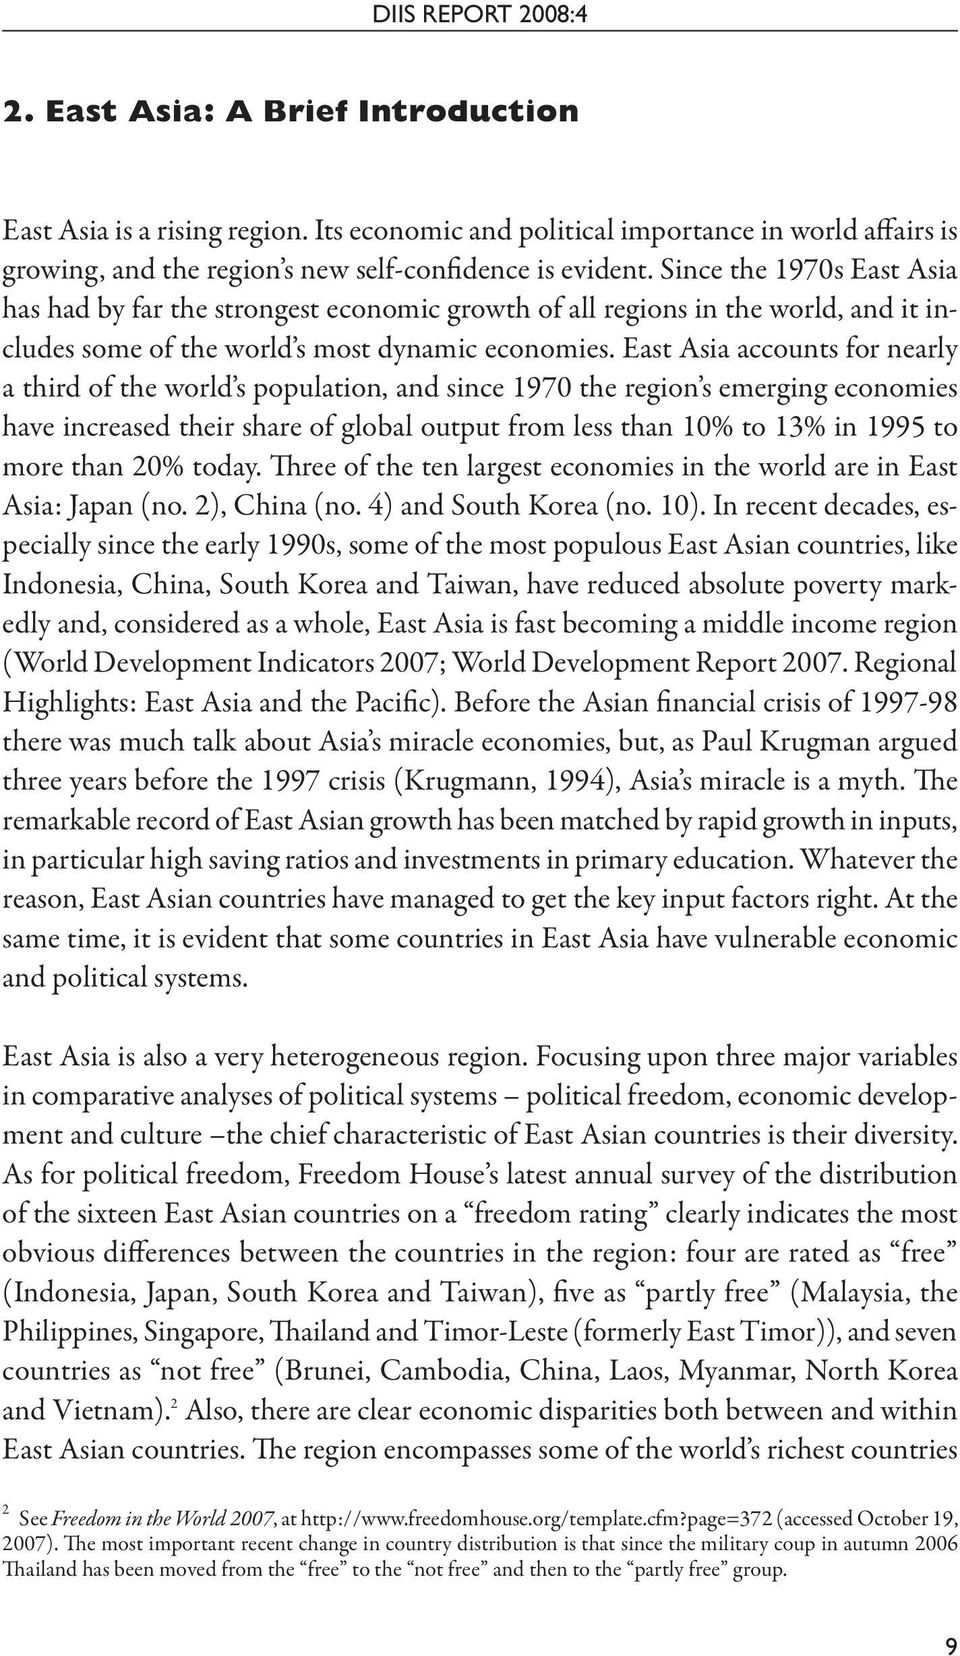 East Asia accounts for nearly a third of the world s population, and since 1970 the region s emerging economies have increased their share of global output from less than 10% to 13% in 1995 to more